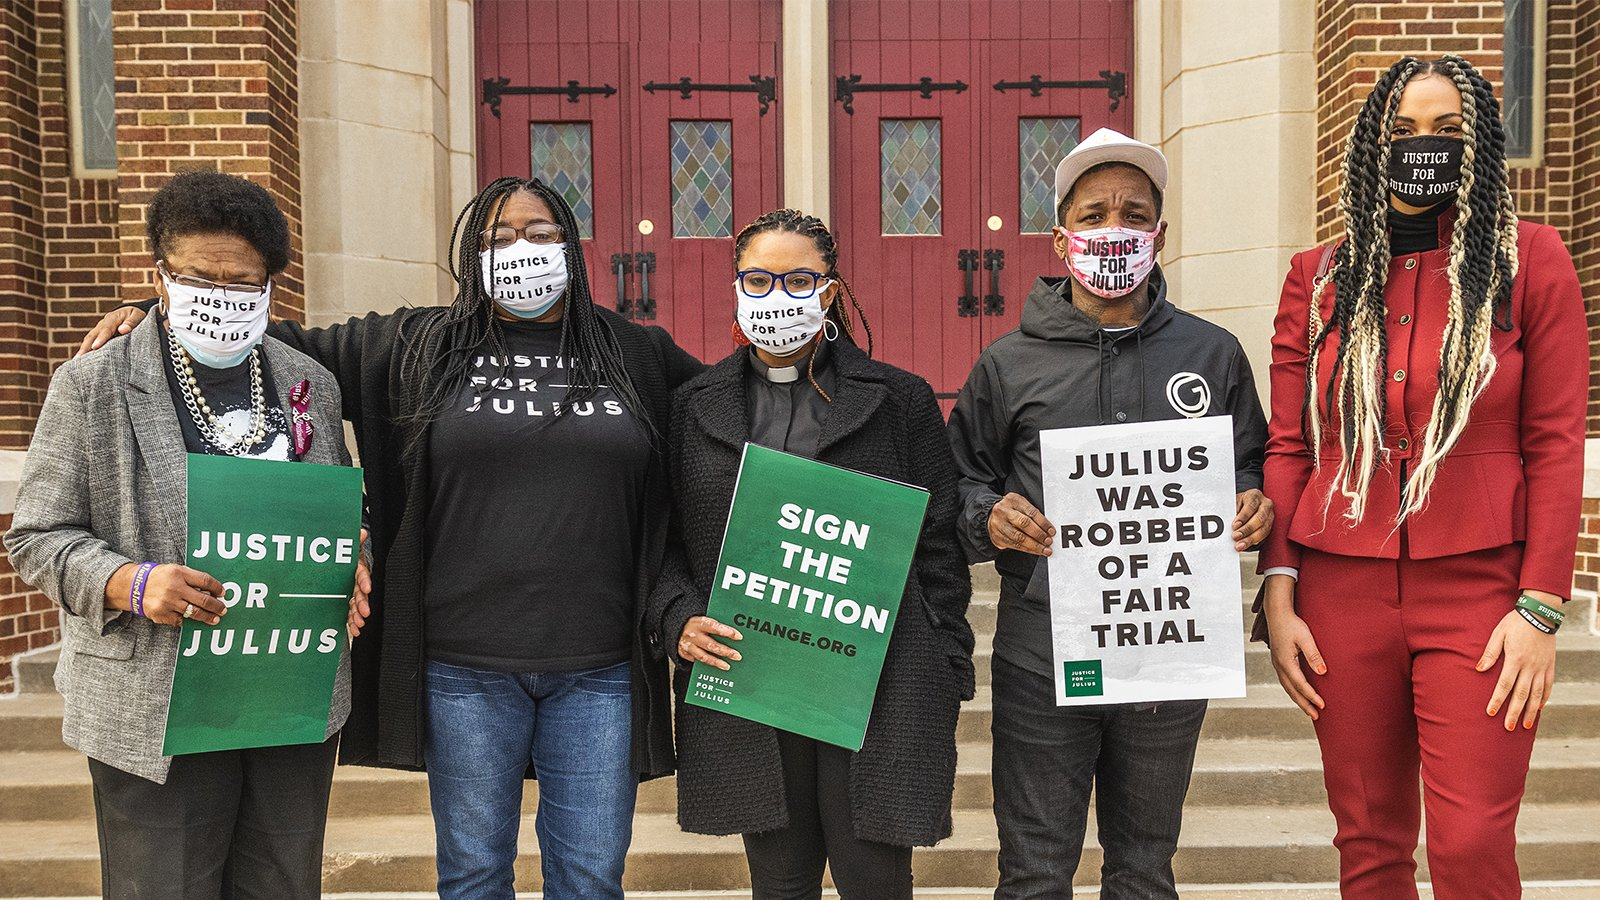 Oklahoma activist and faith leader Cece Jones-Davis, center, with family and supporters of Julius Jones, Thursday, Feb. 25, 2021, in Oklahoma City. At left is Madeline Davis-Jones, the mother of Julius Jones. Courtesy photo